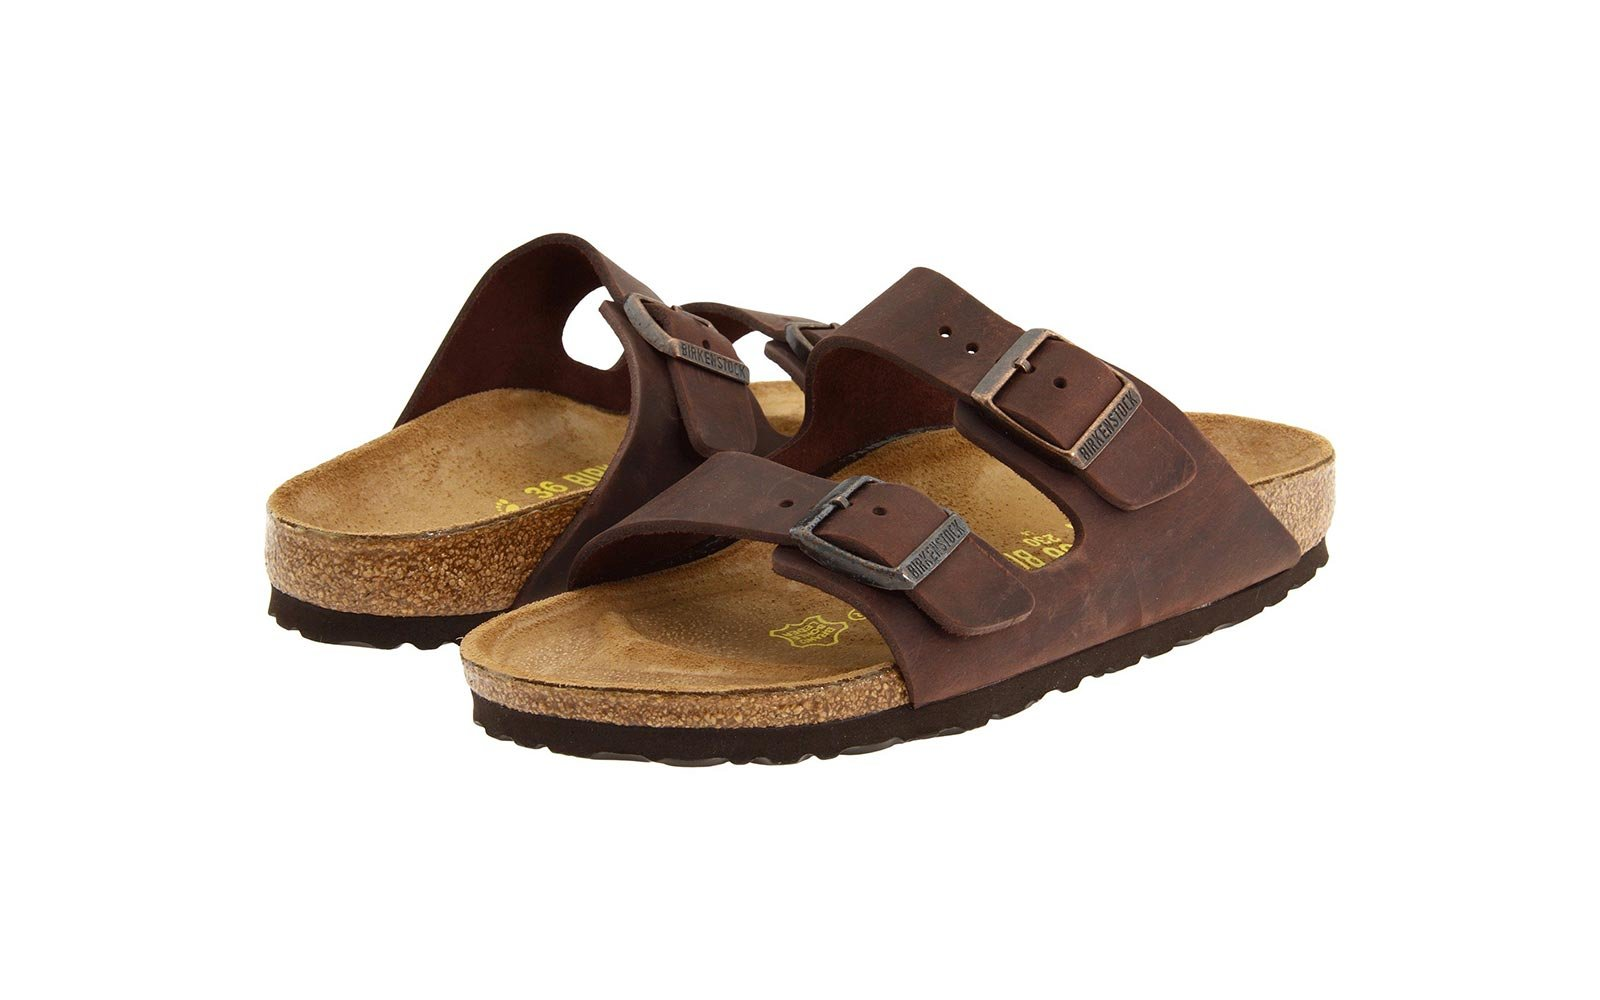 70d30889e58 The Best Men s Leather Sandals to Wear This Summer